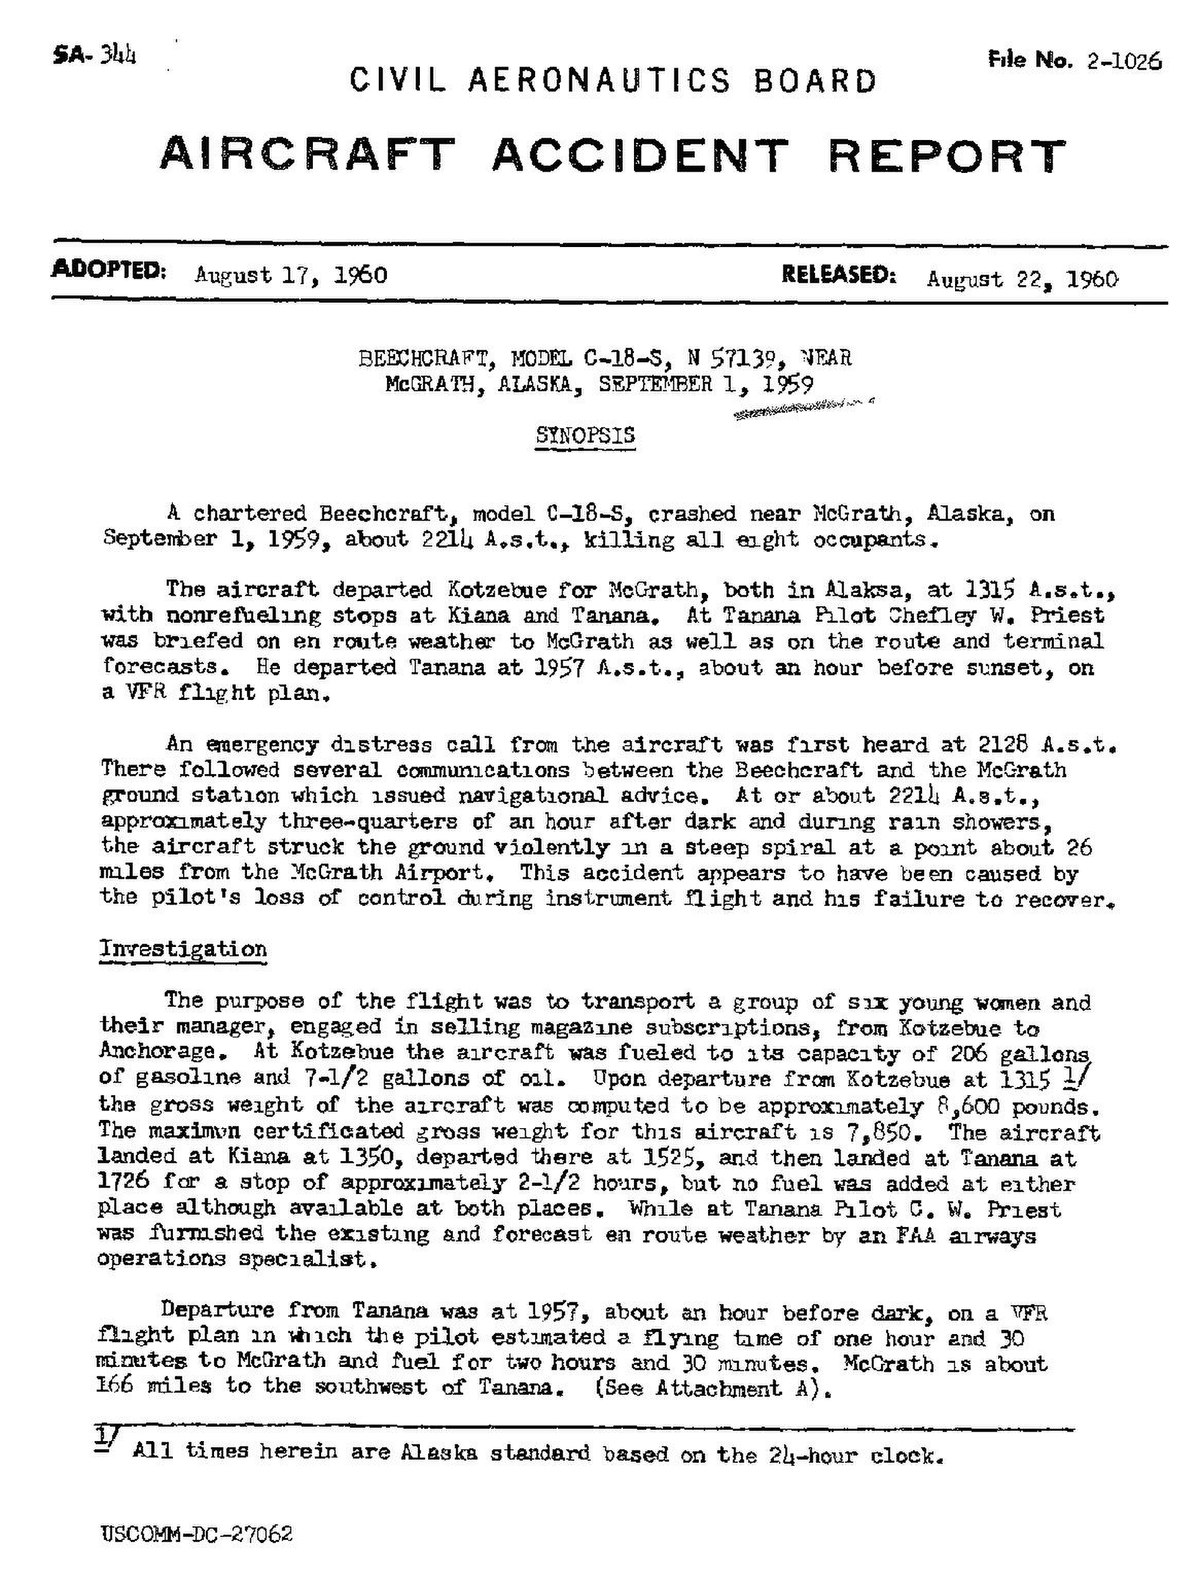 File:CAB Accident Report, Beechcraft C-18-S on 1 September 1959 ...